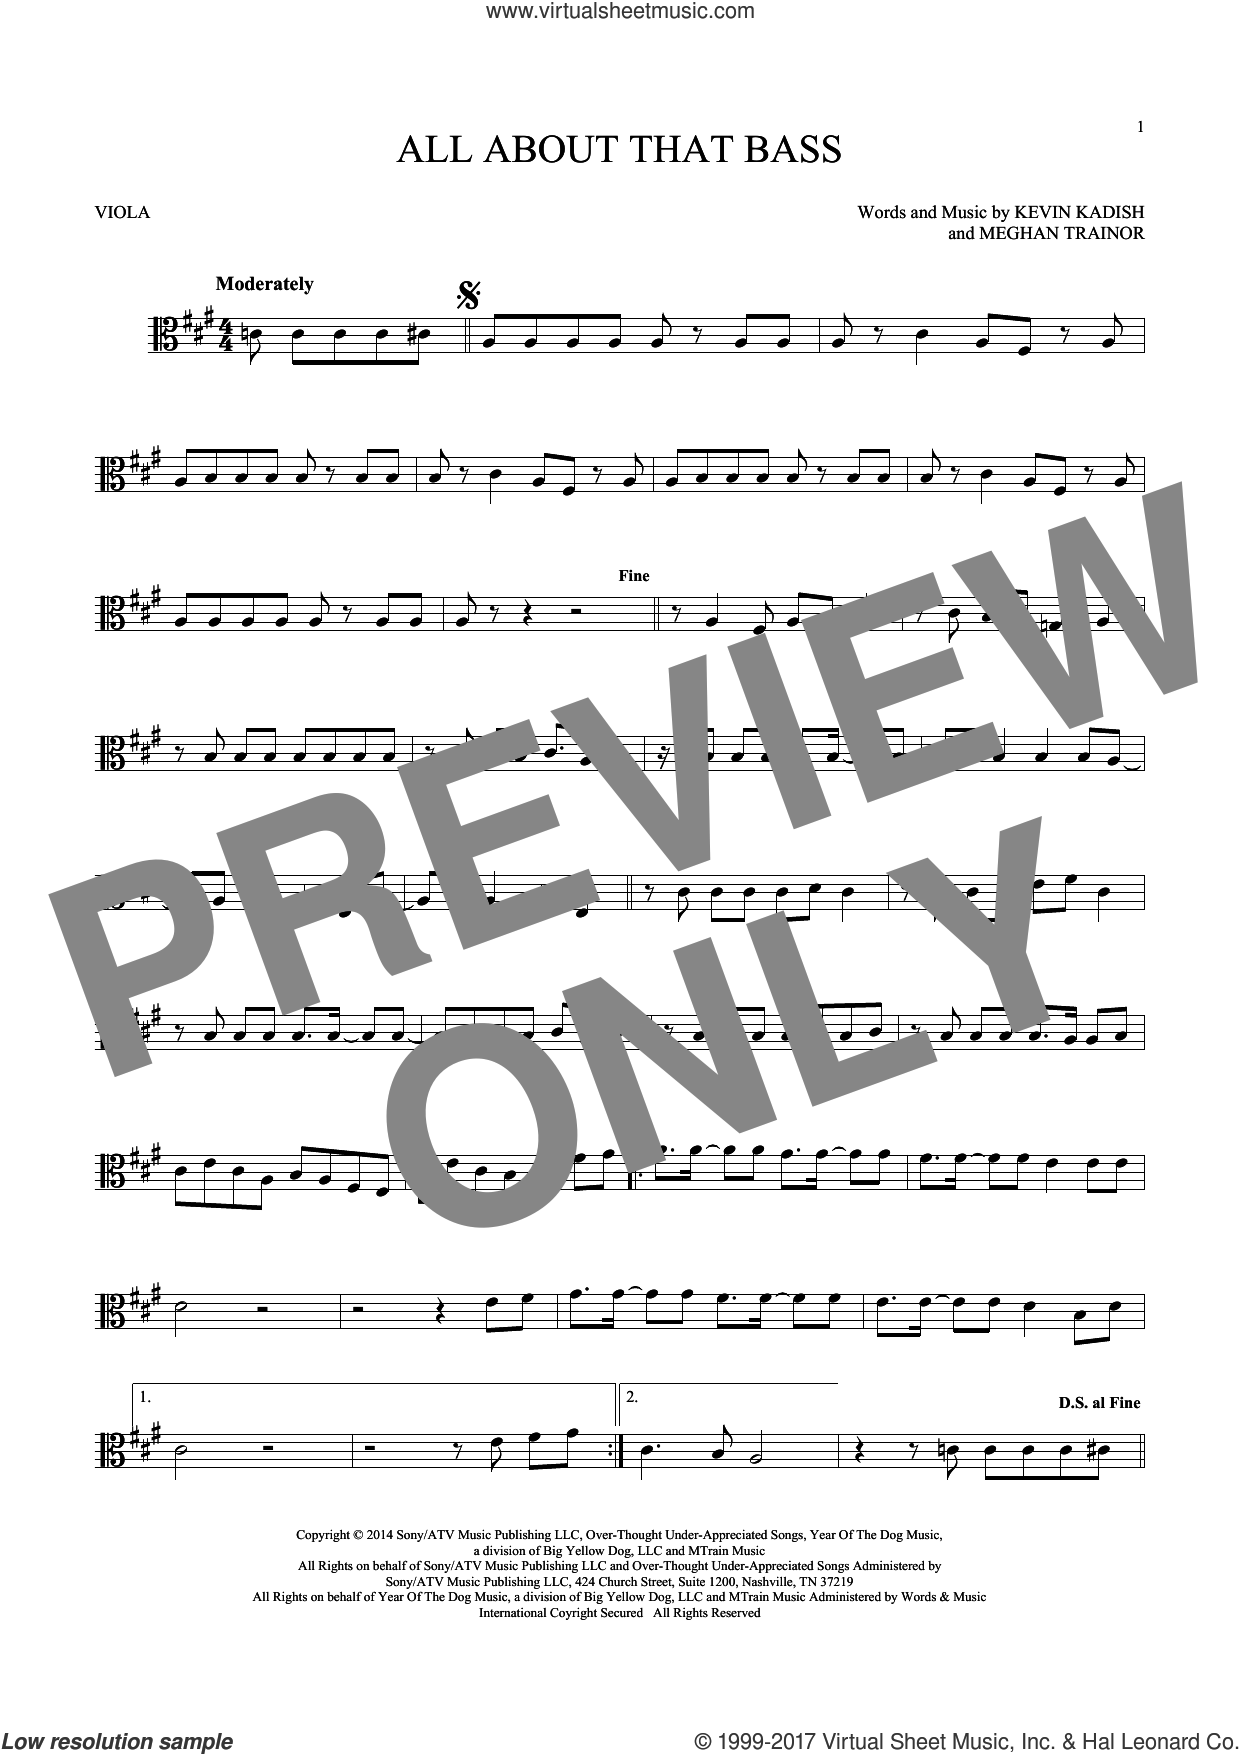 All About That Bass sheet music for viola solo by Kevin Kadish and Meghan Trainor. Score Image Preview.